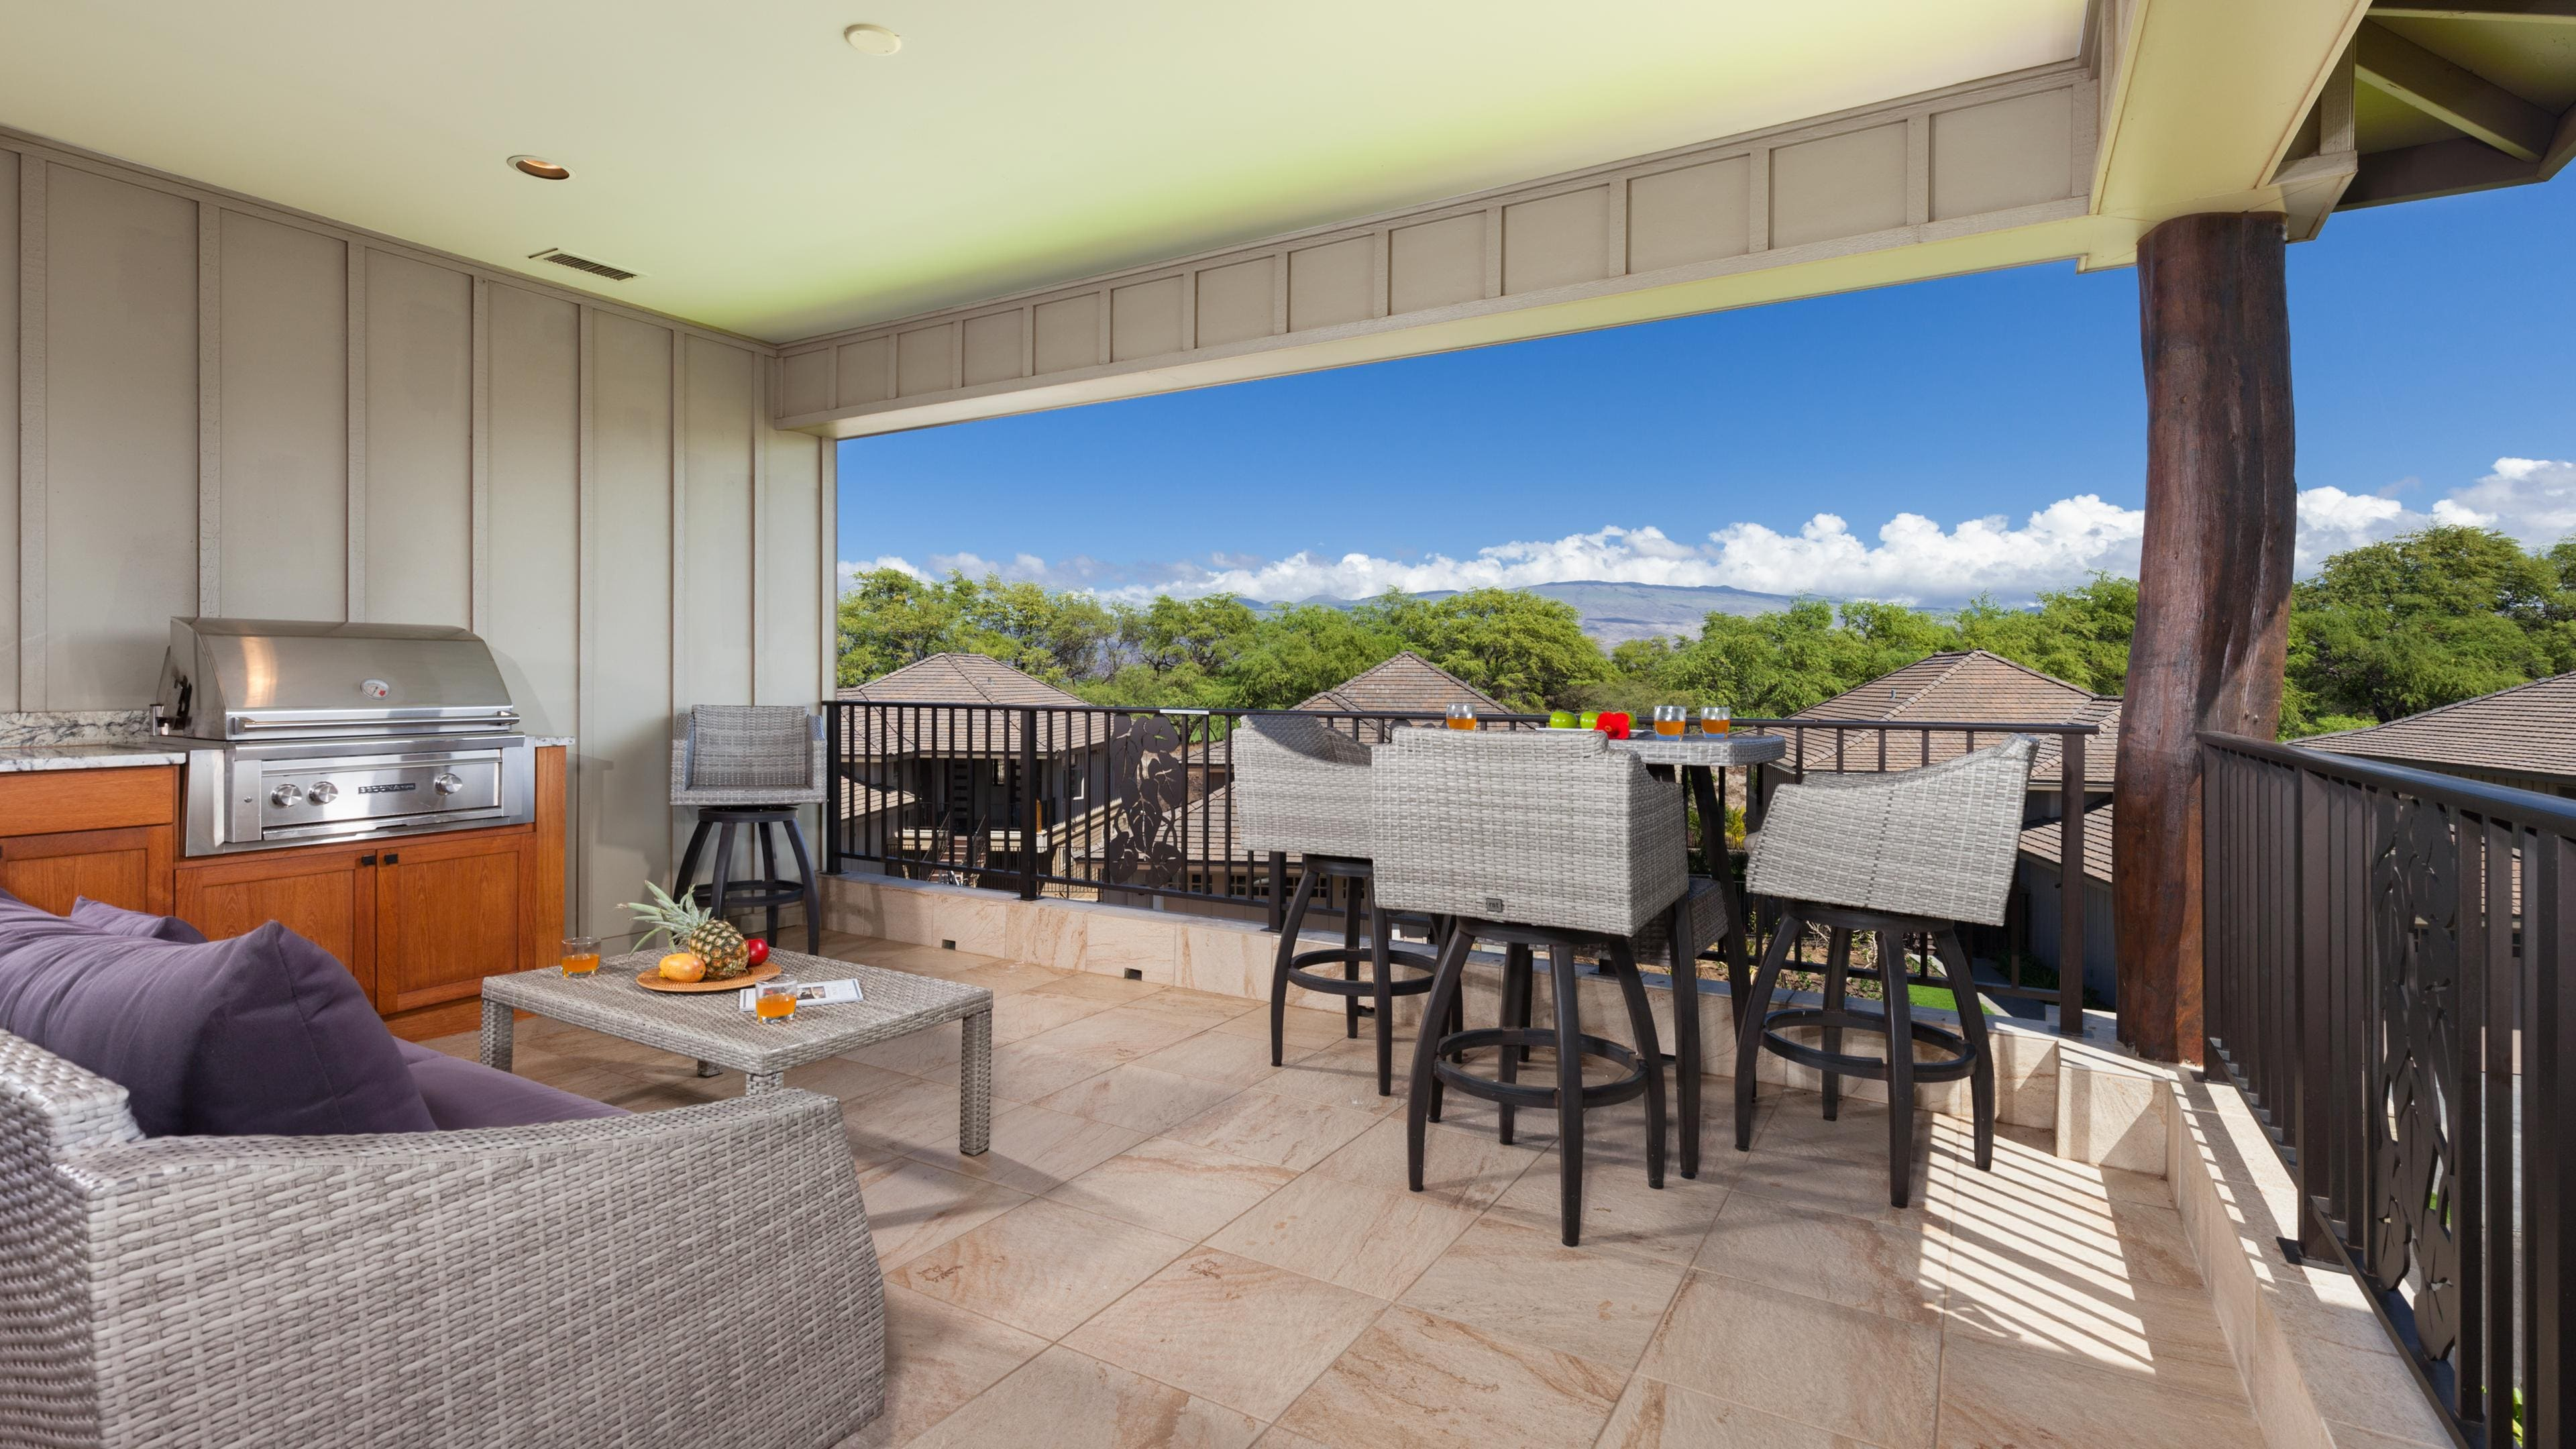 Welcome to Hawaiian Bliss in the beautiful KaMilo community at the Mauna Lani resort - Outdoor living on covered lanai with private grill